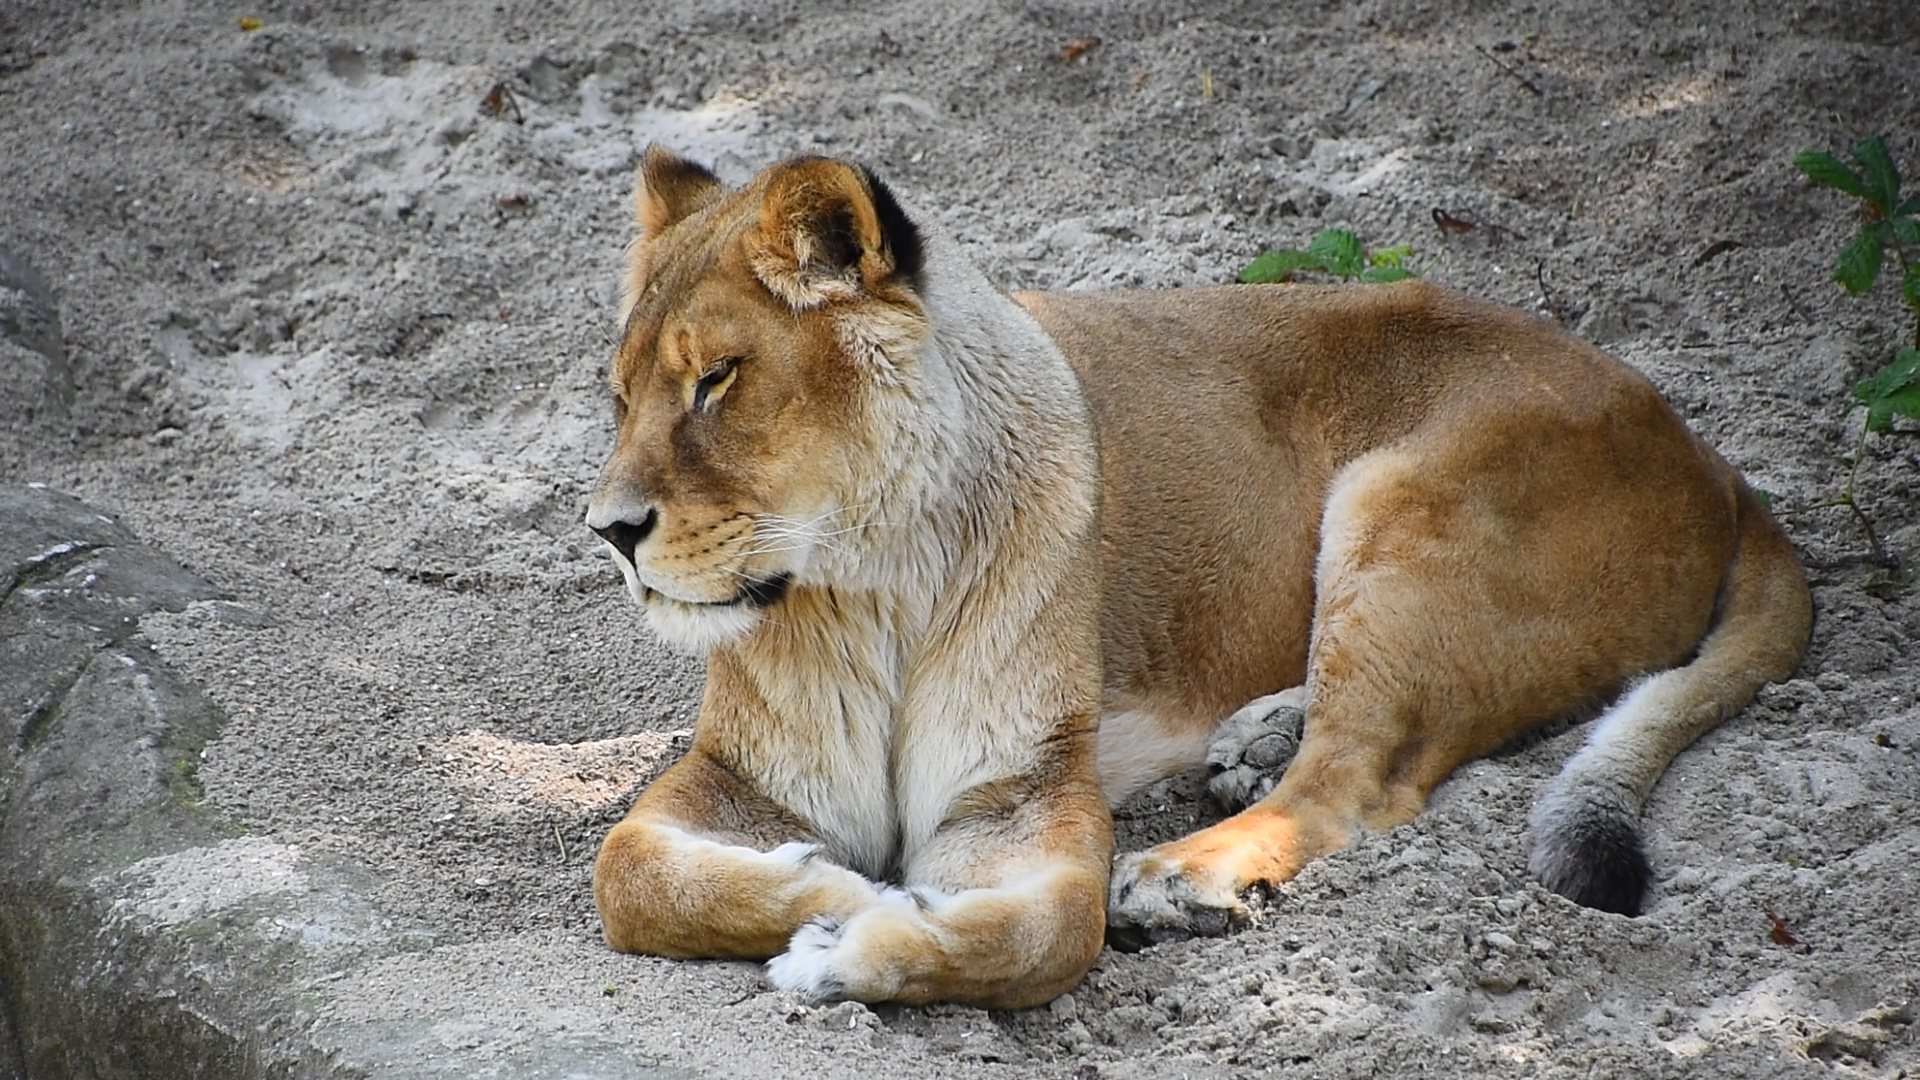 Close up lioness resting on the ground ~ Footage #84944238